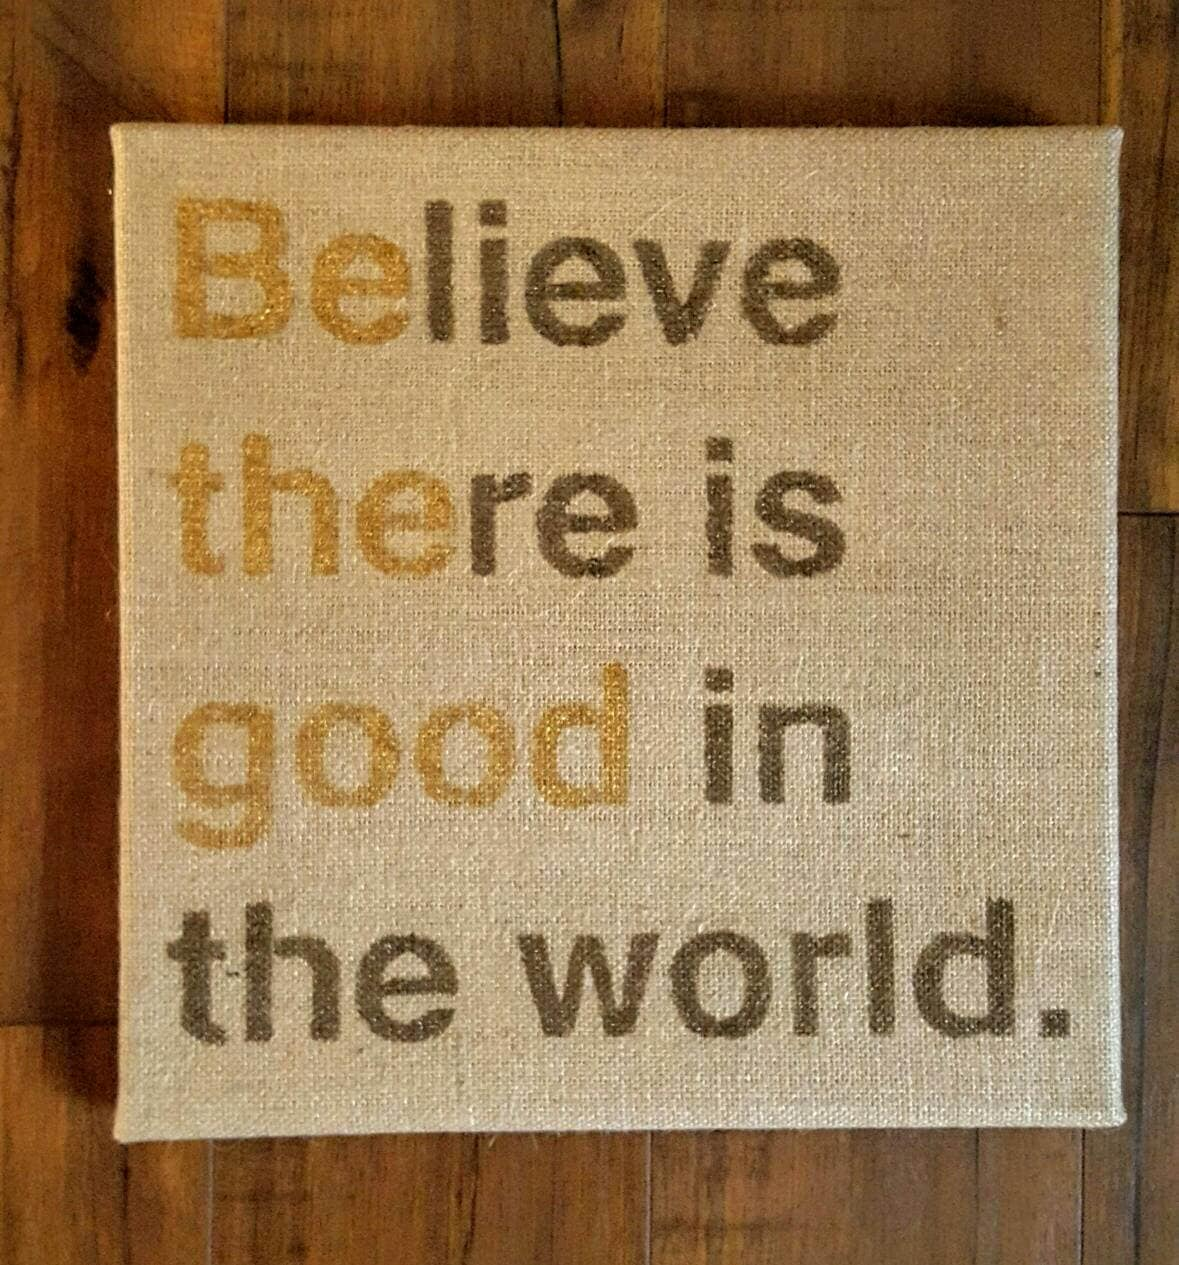 Believe there is good in the world sign burlap sign 12x12